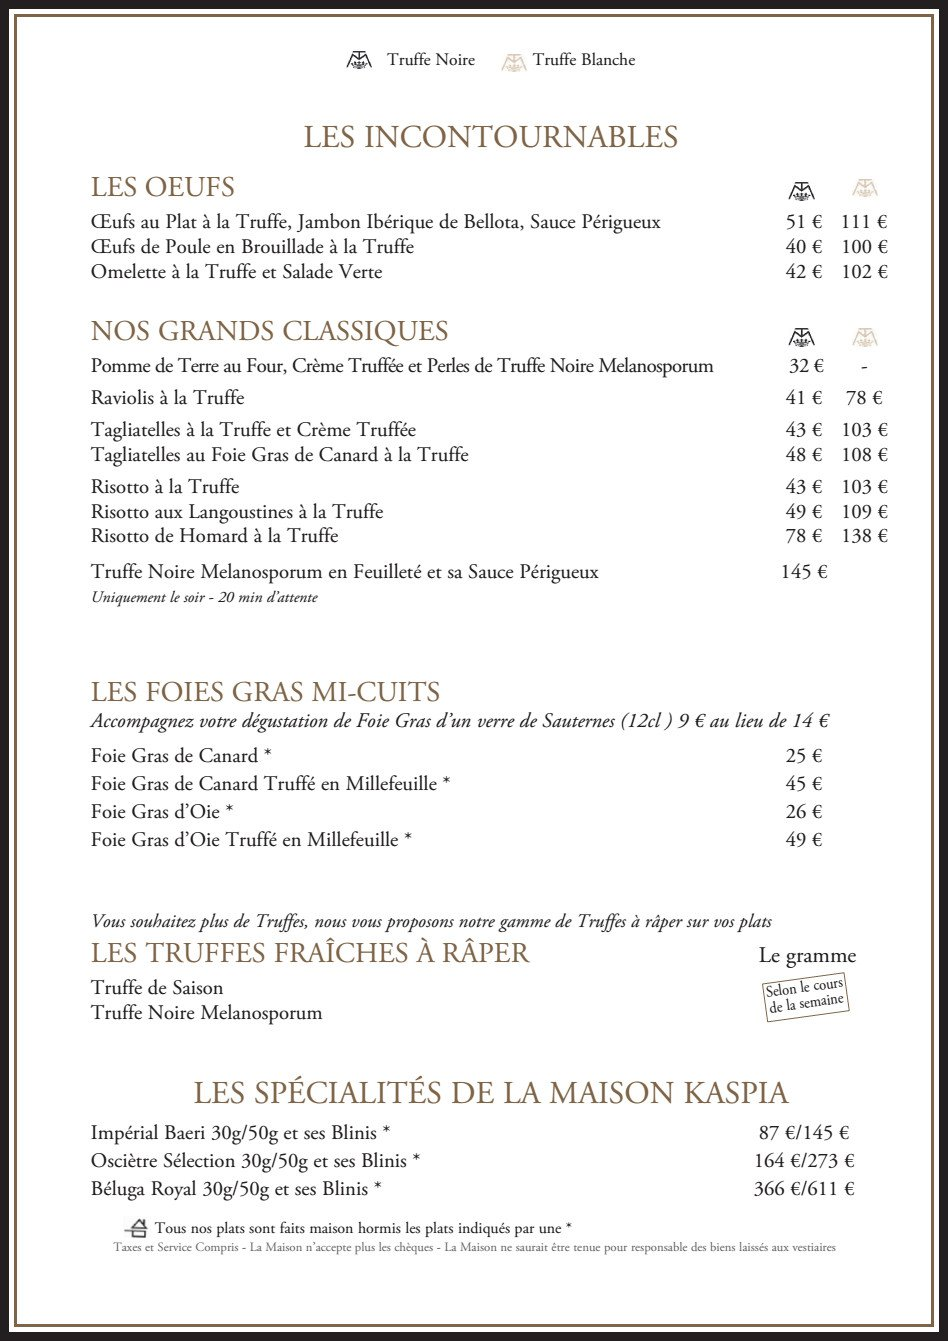 La maison de la truffe paris 9 carte menu et photos - Maison des truffes paris ...